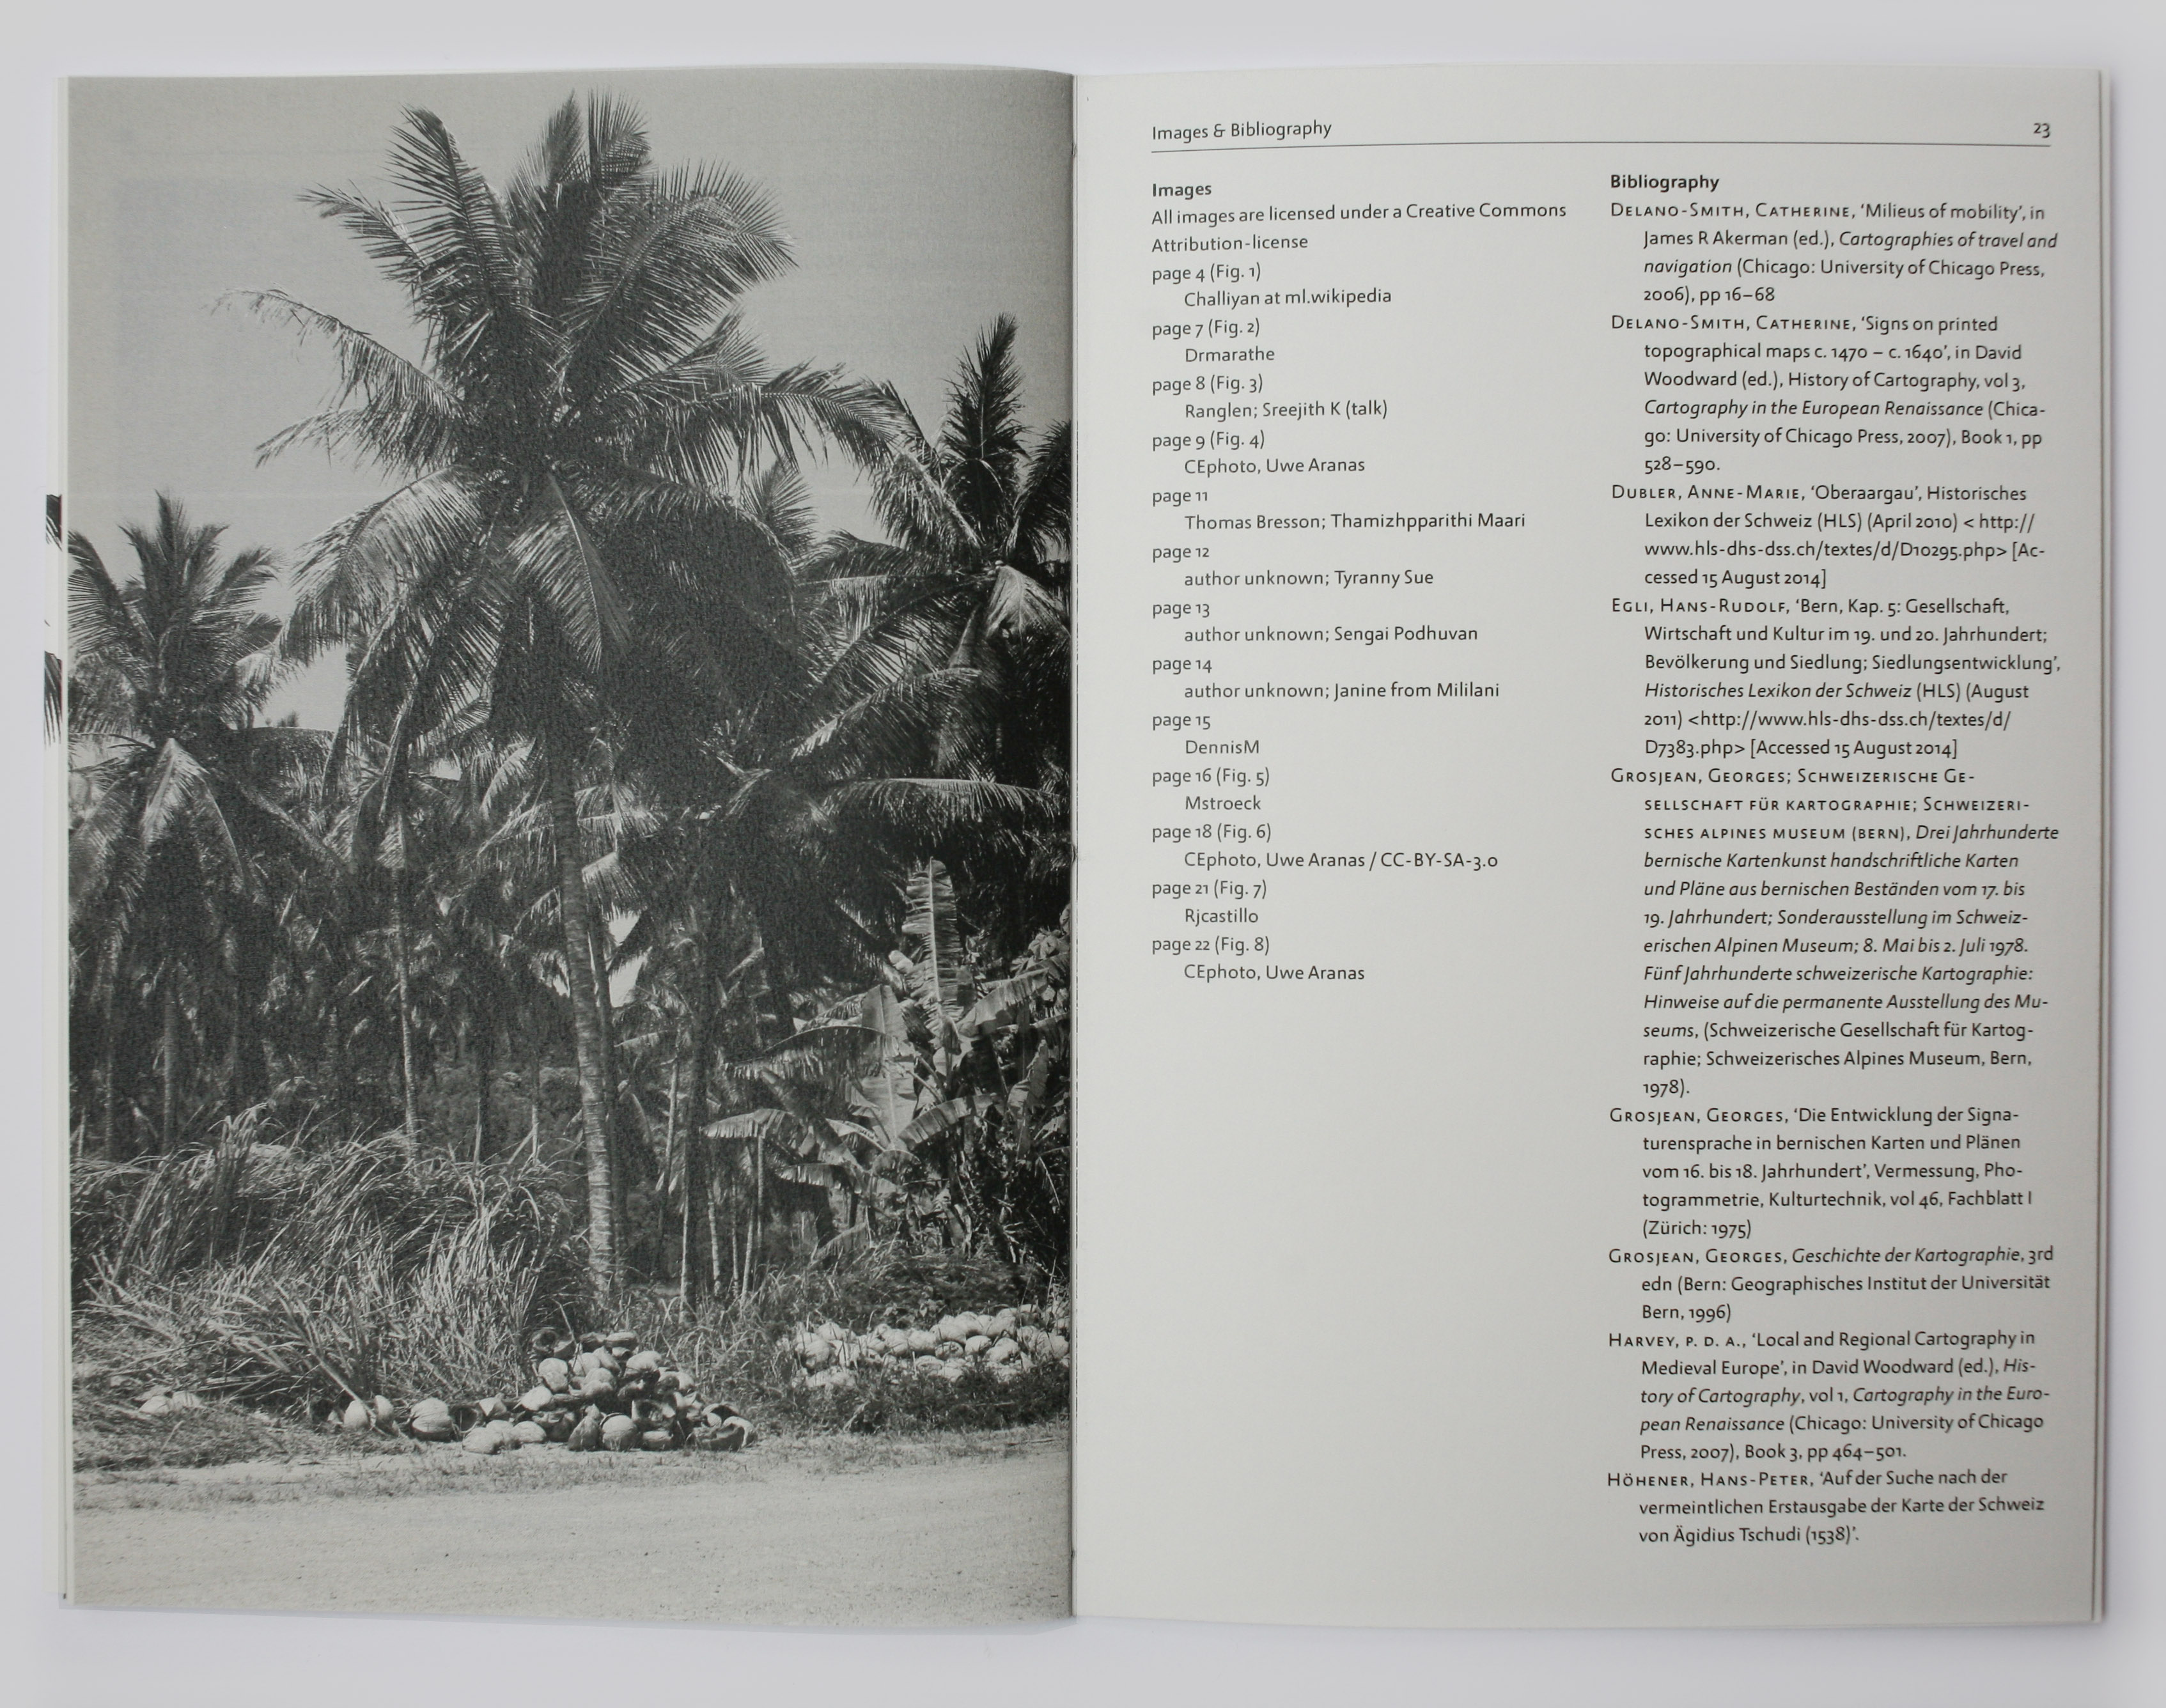 Spread in book with text and photographs